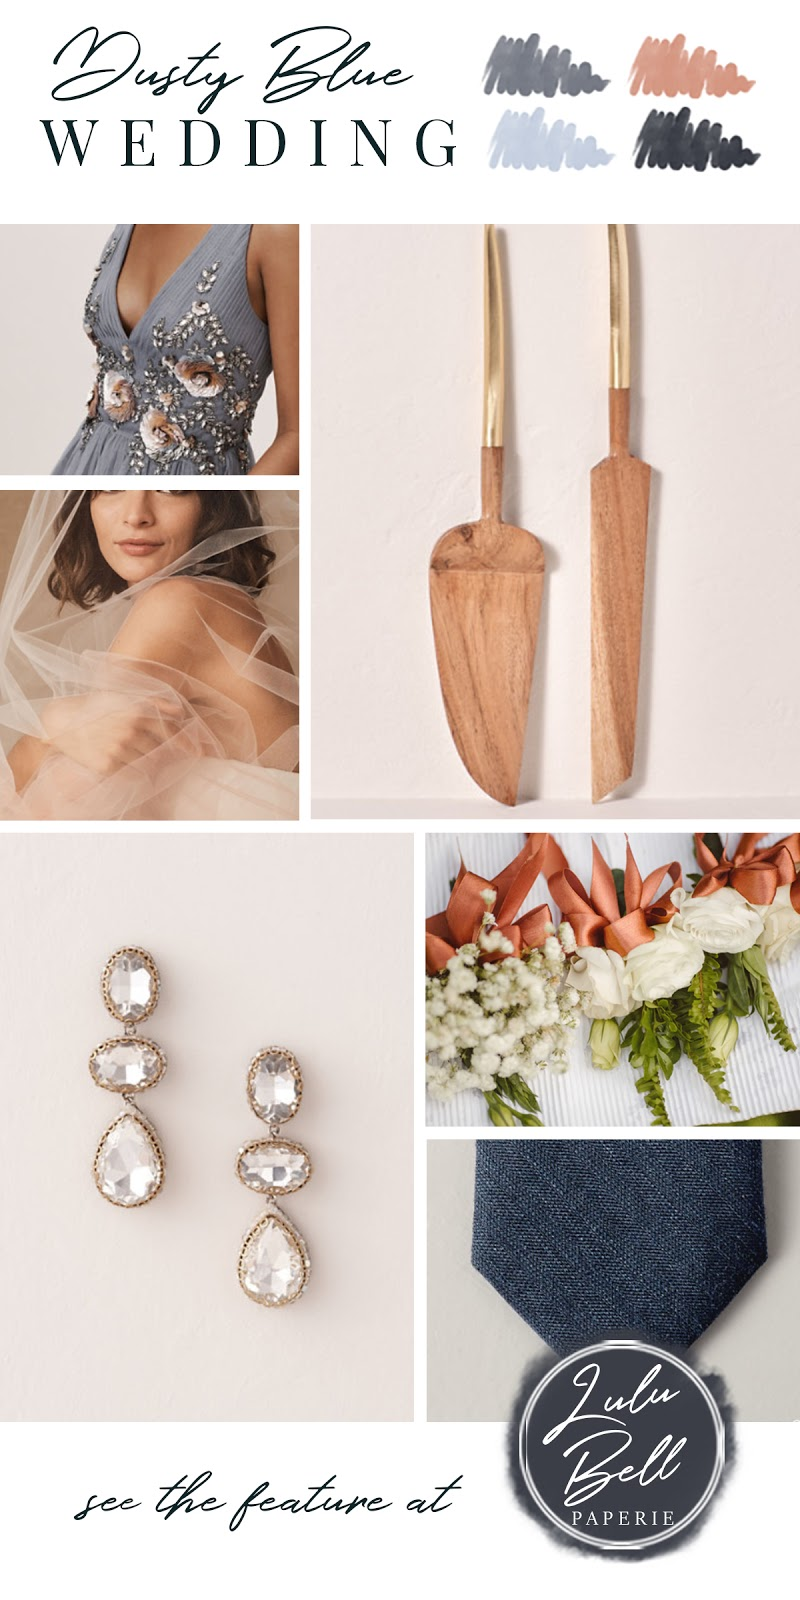 Dusty Blue Rose Gold and Navy Wedding Color Palette Inspiration - Bridesmaid Gown, Cake Server, Wedding Veil, Crystal Earrings, Floral Bouquets, and Neck Ties